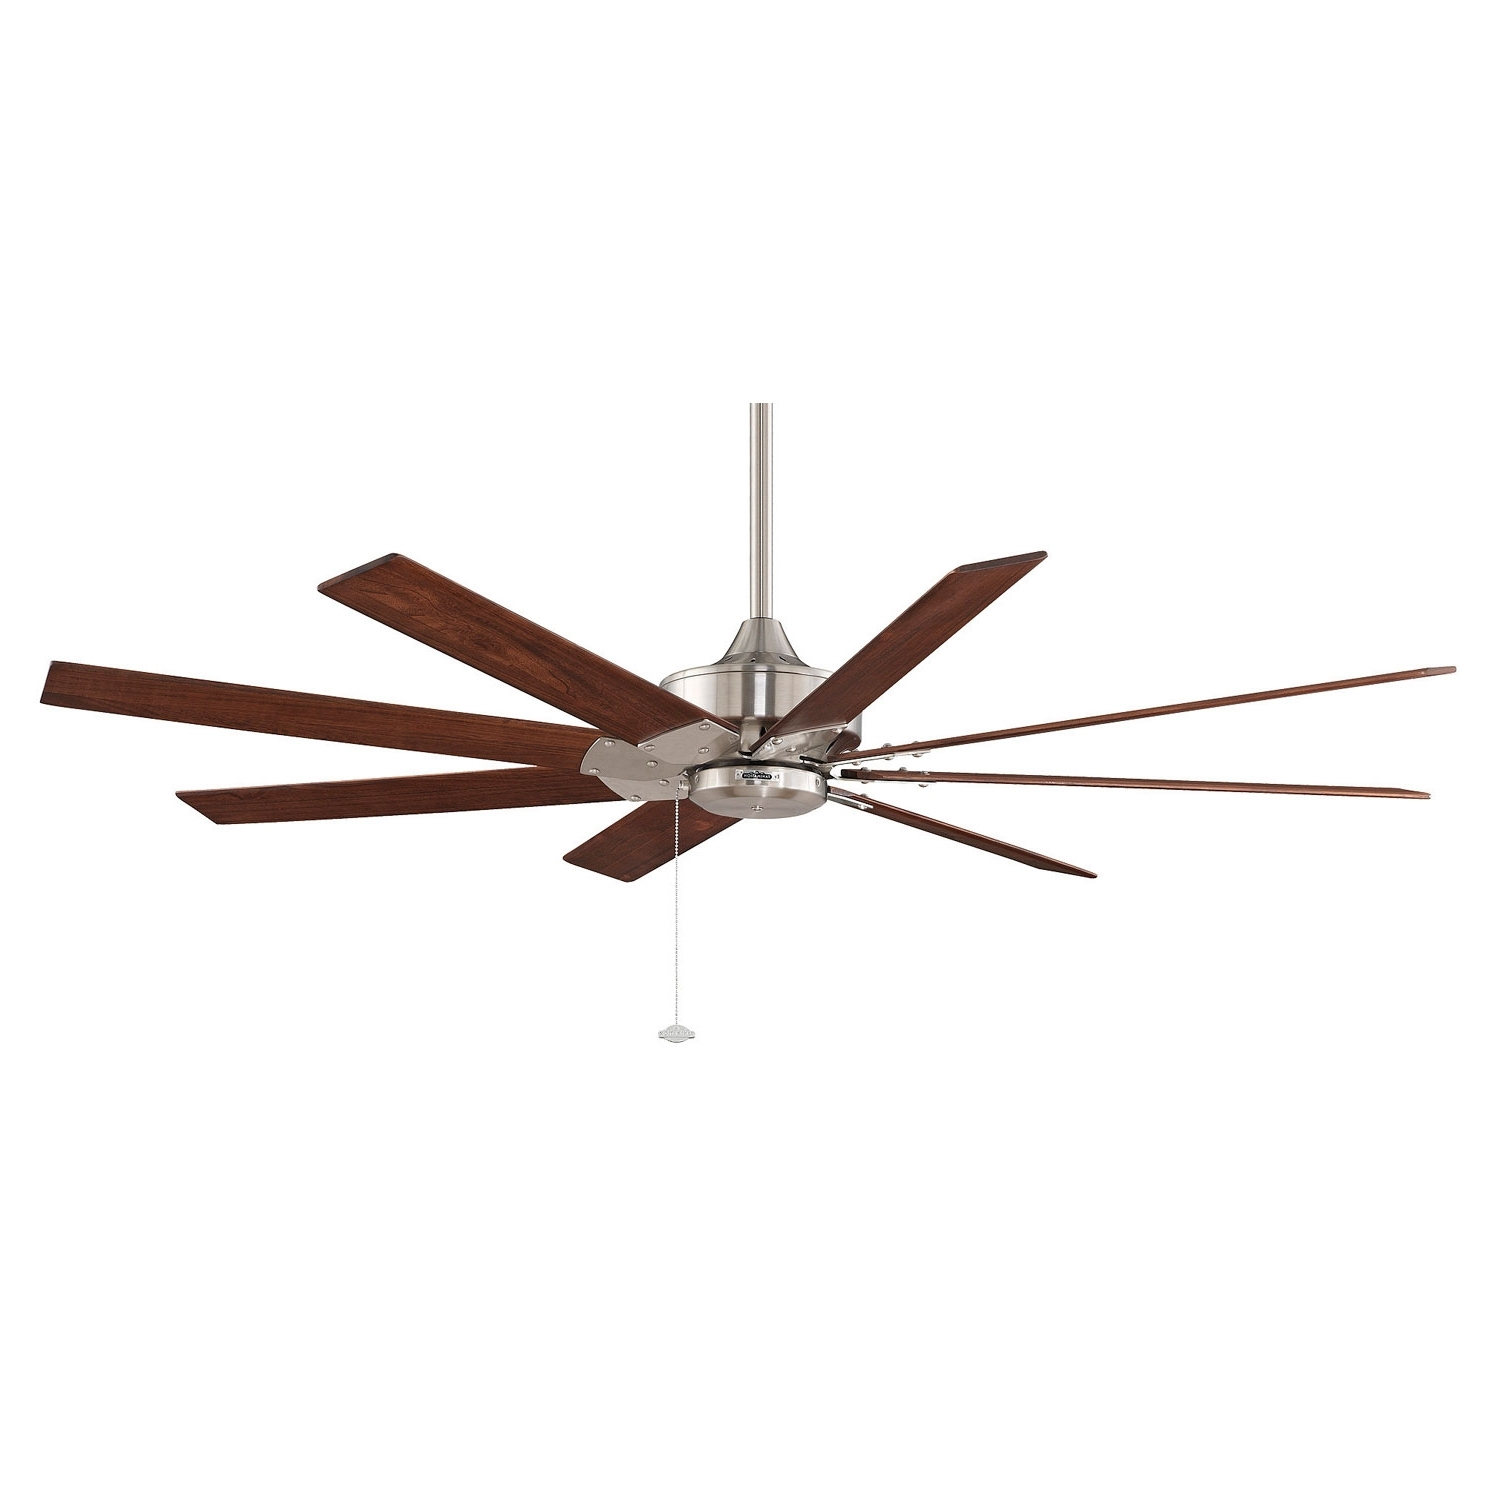 Well Liked Commercial Outdoor Ceiling Fans Inside Fanimation Levon Brushed Nickel 63 Inch Energy Star Ceiling Fan With (View 19 of 20)